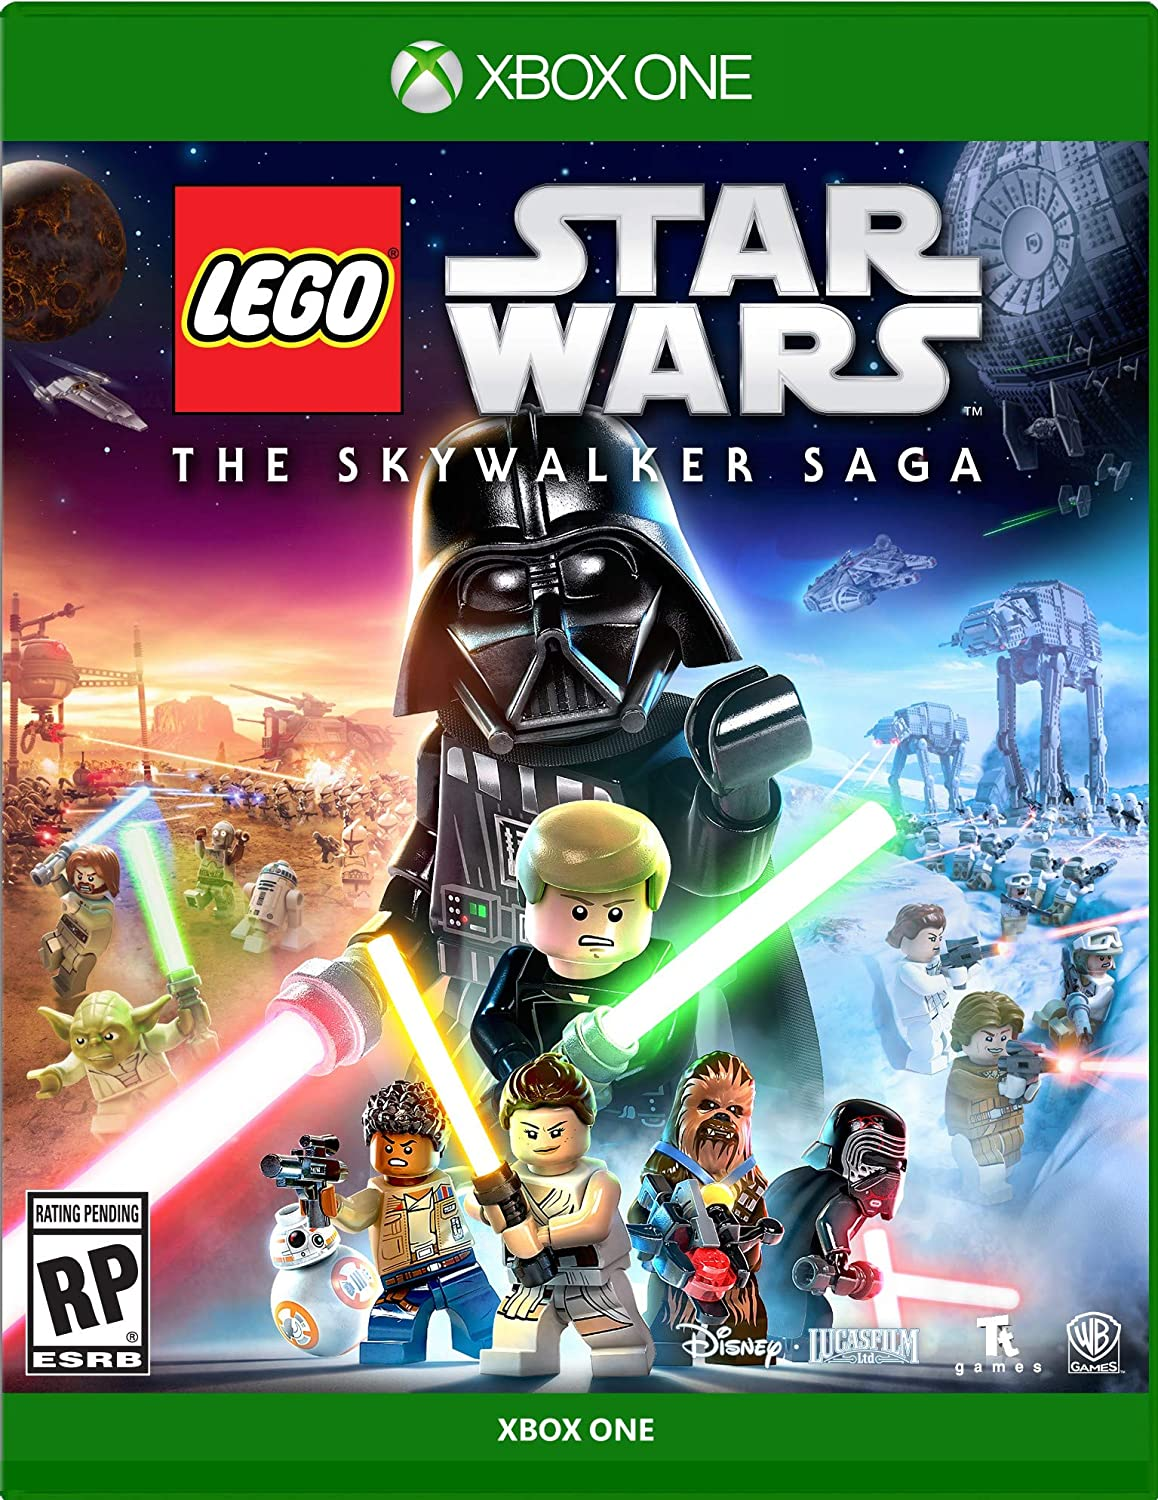 Lego Star Wars Skywalker Saga for Xbox One [USA]: Amazon.es: Whv ...